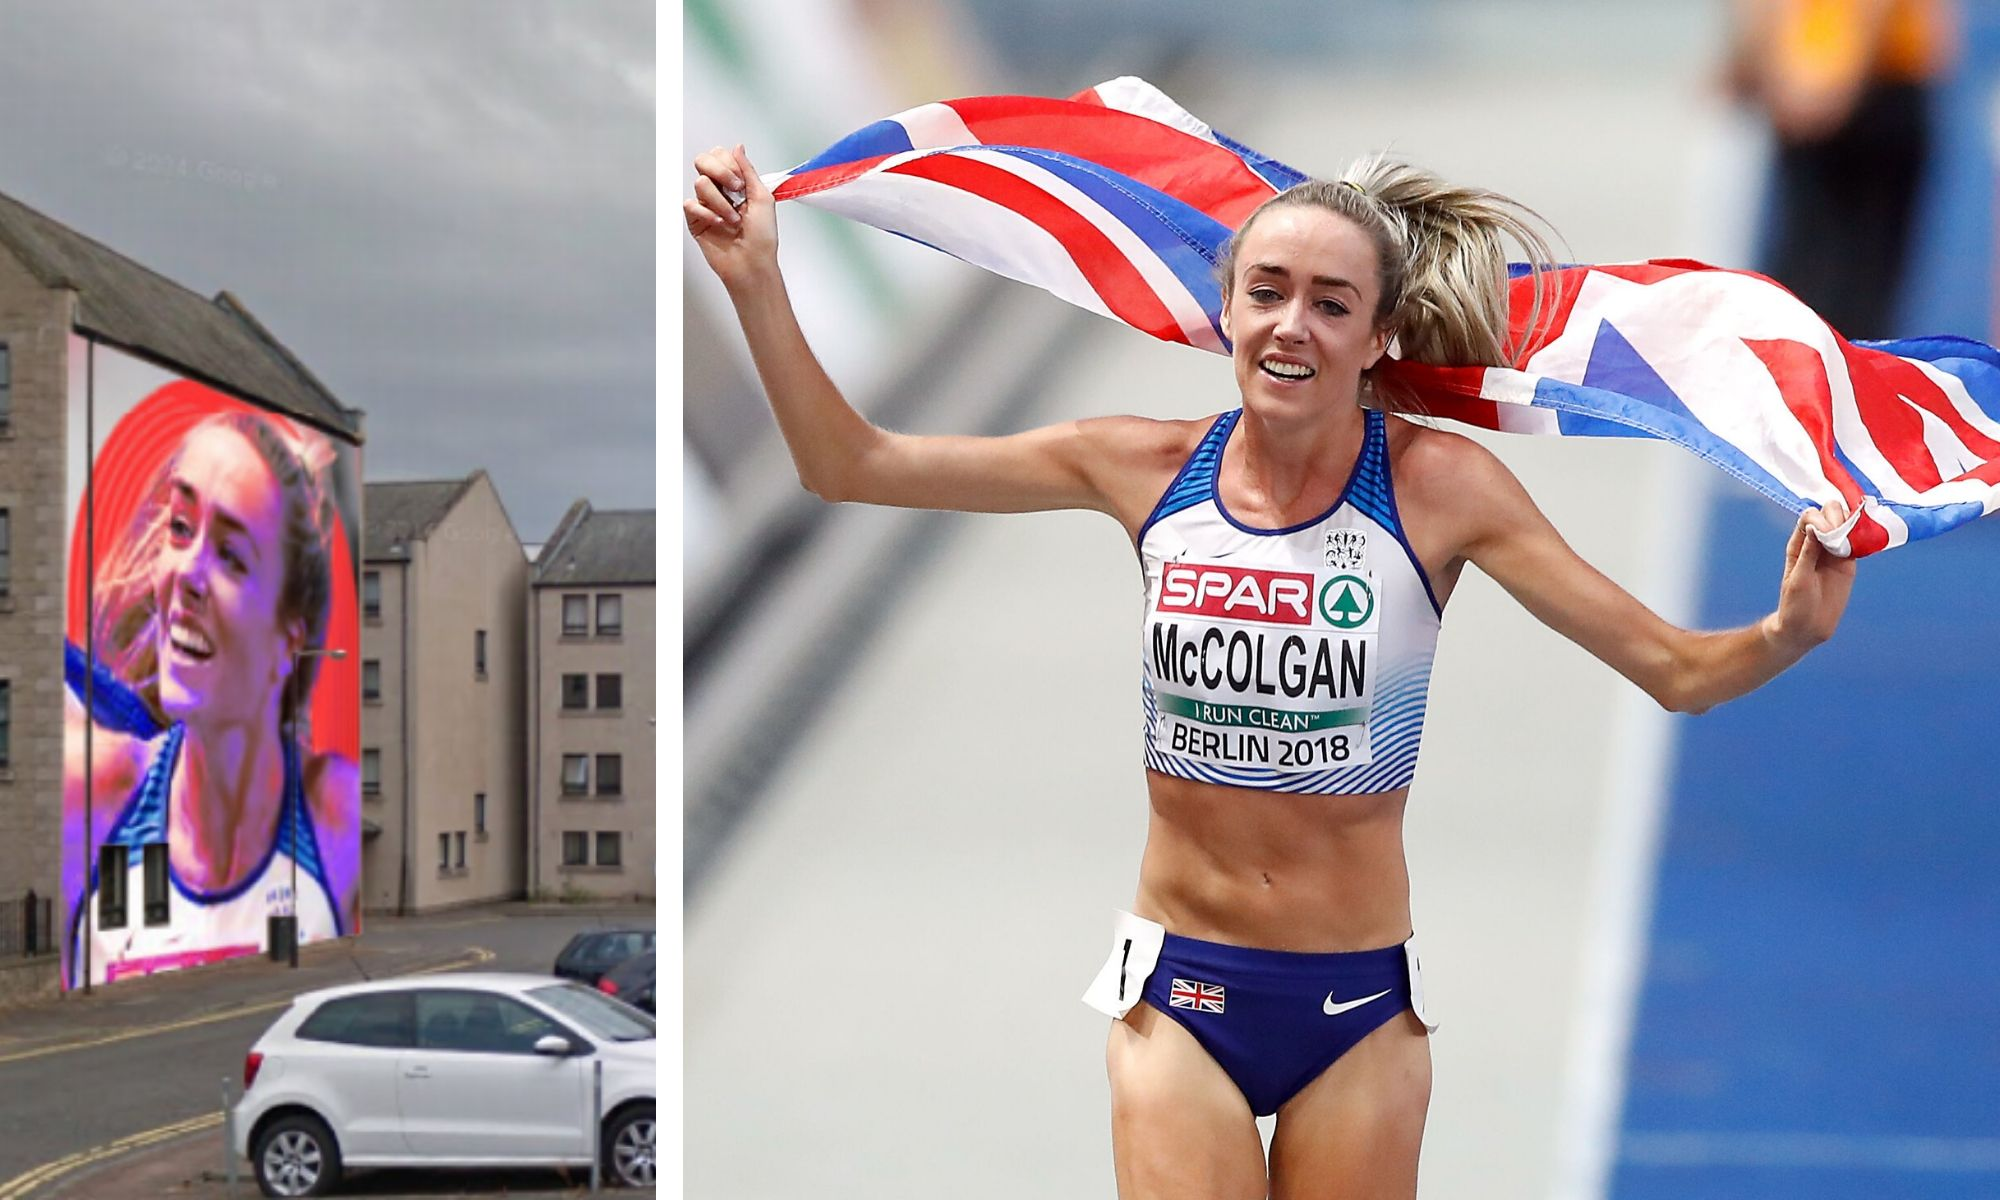 The proposed mural will celebrate the achievements of runner Eilish McColgan.